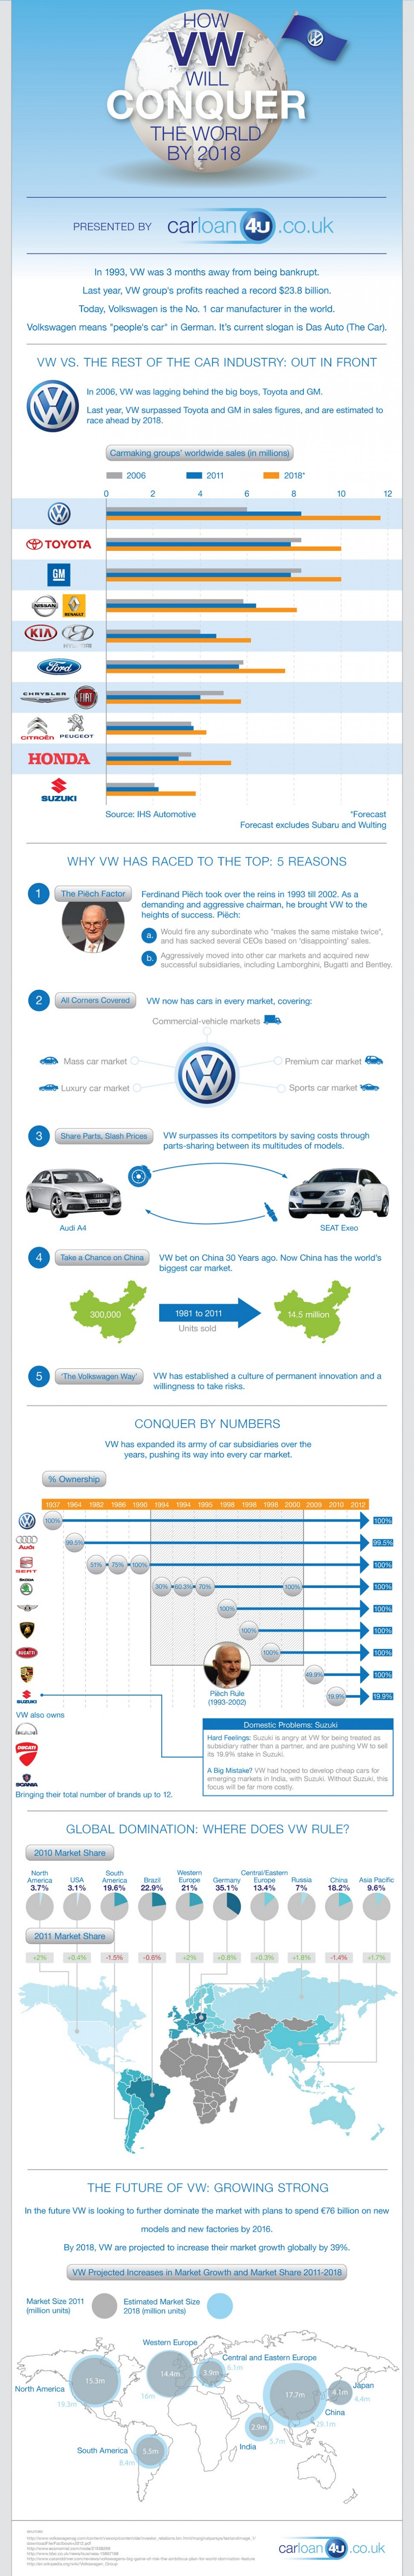 How VW will conquer the world by 2018 Infographic